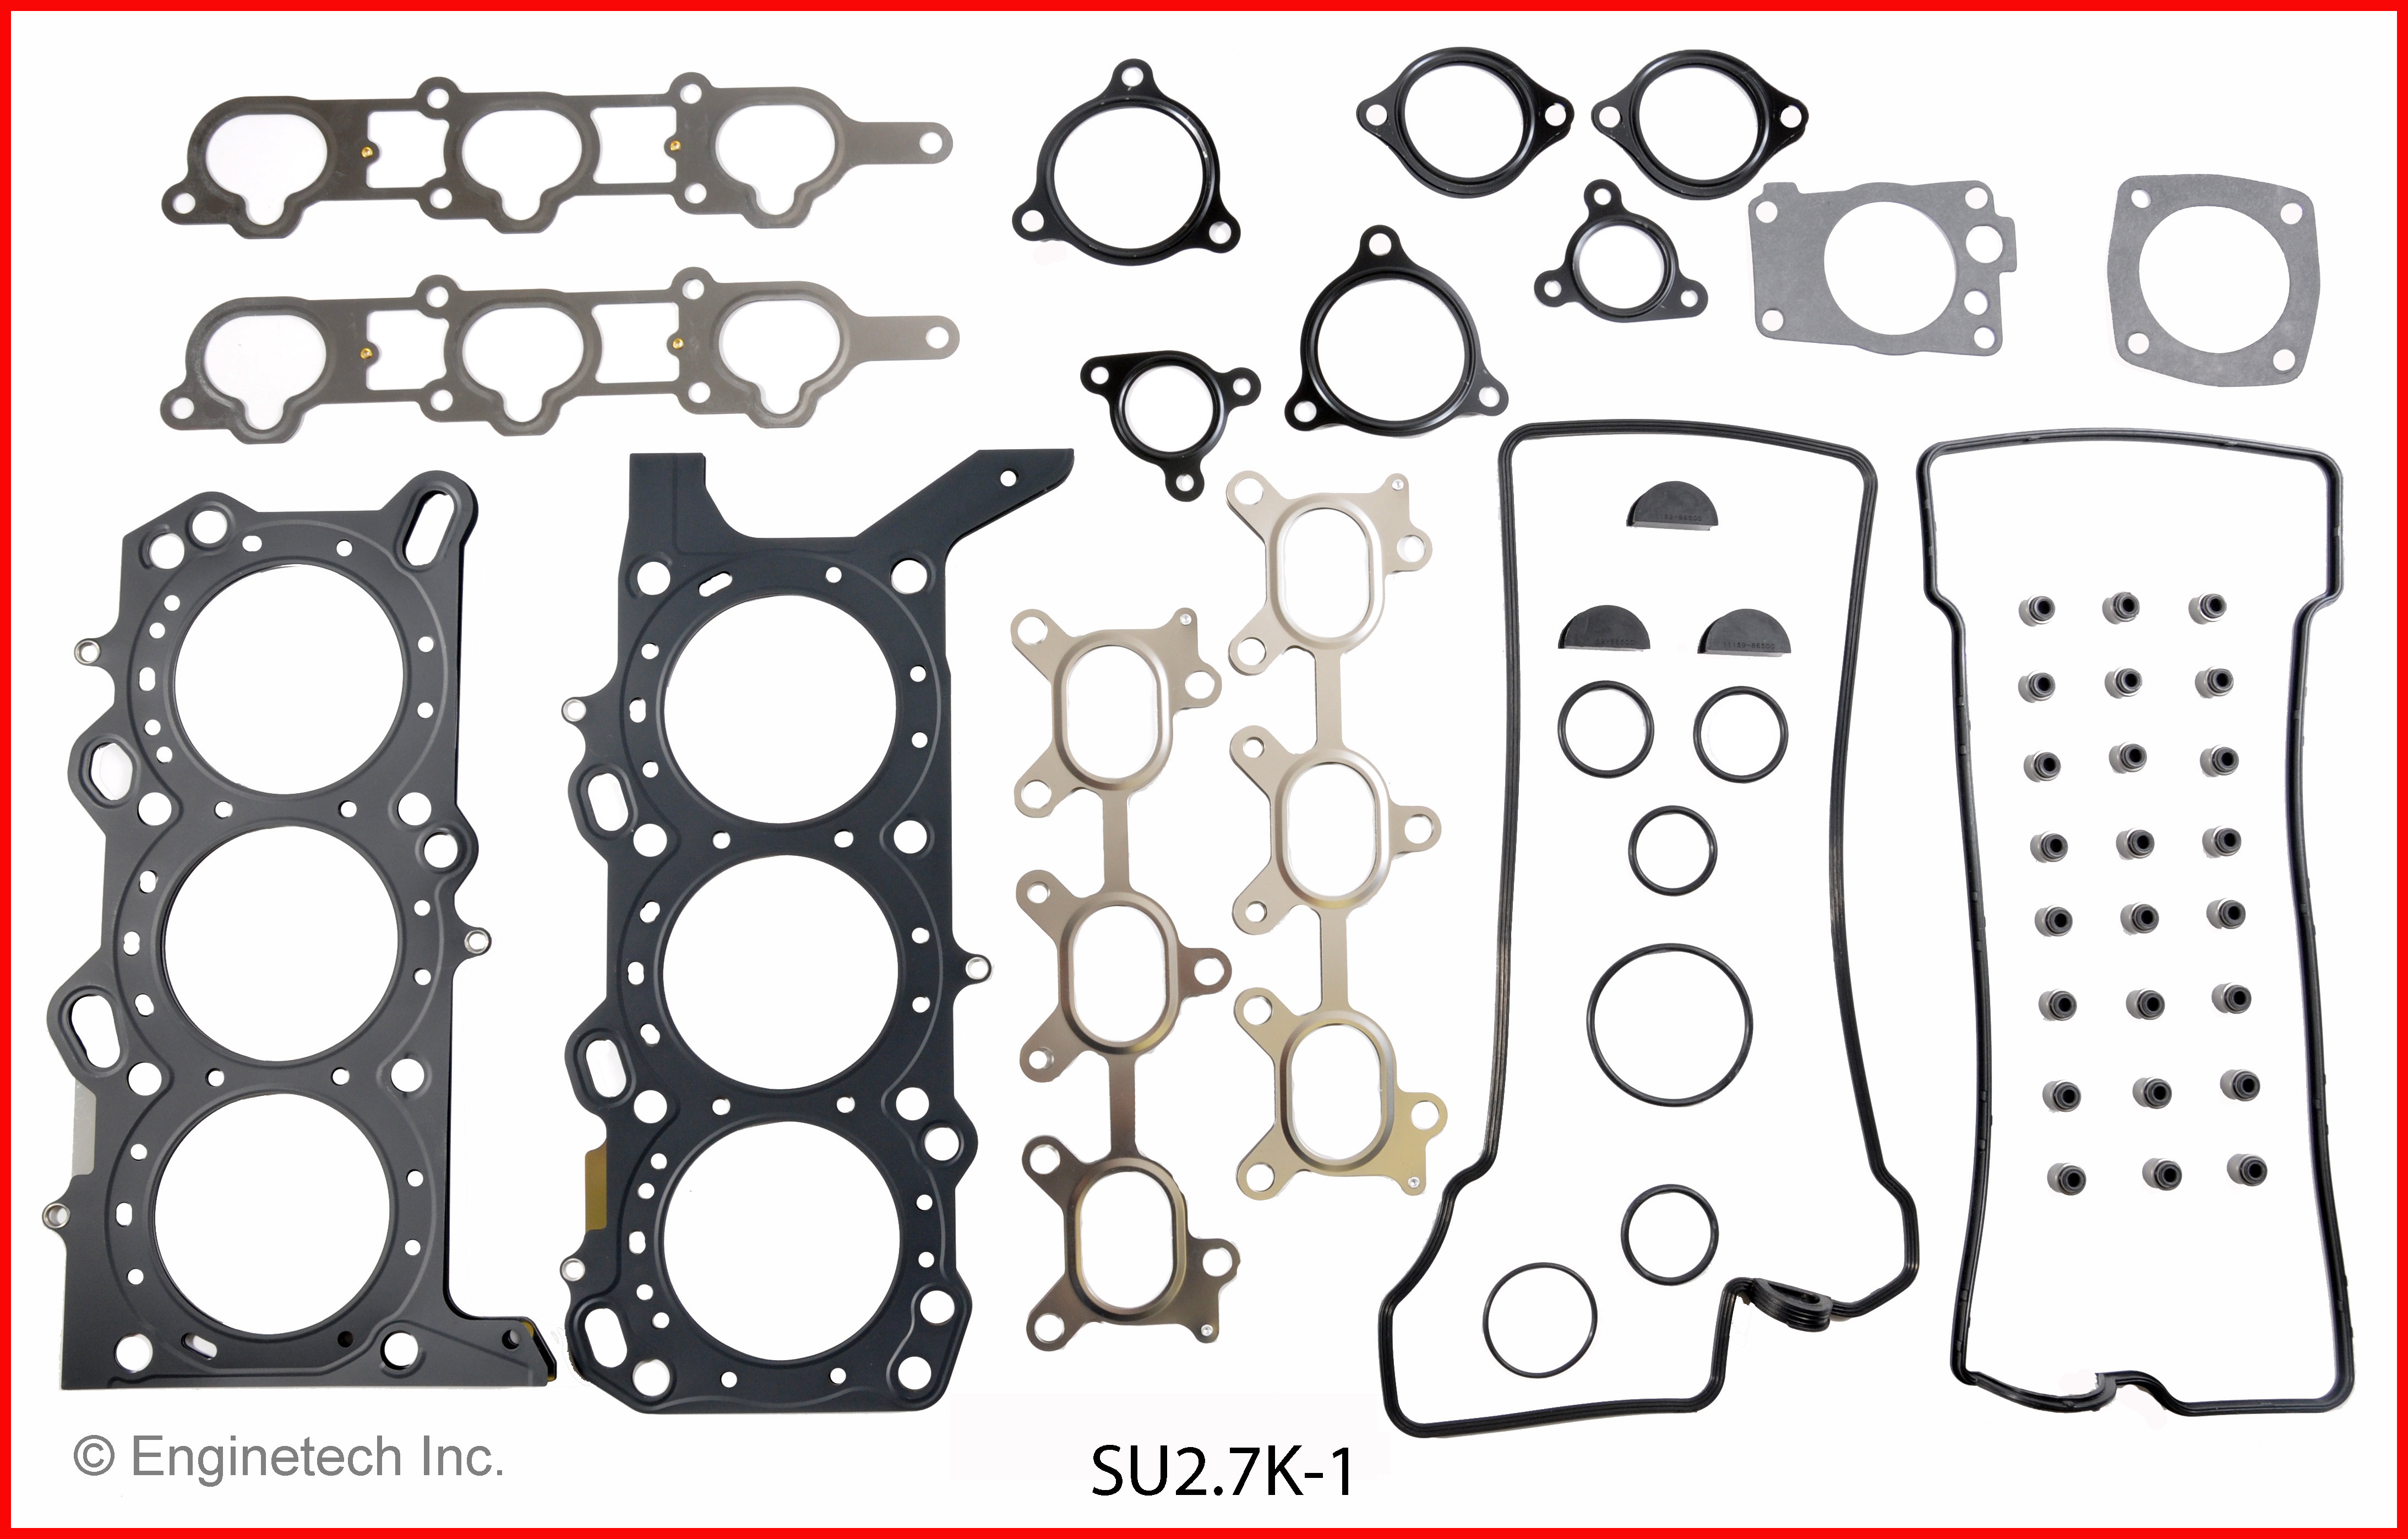 SU2.7K-1 Gasket Set - Full Enginetech